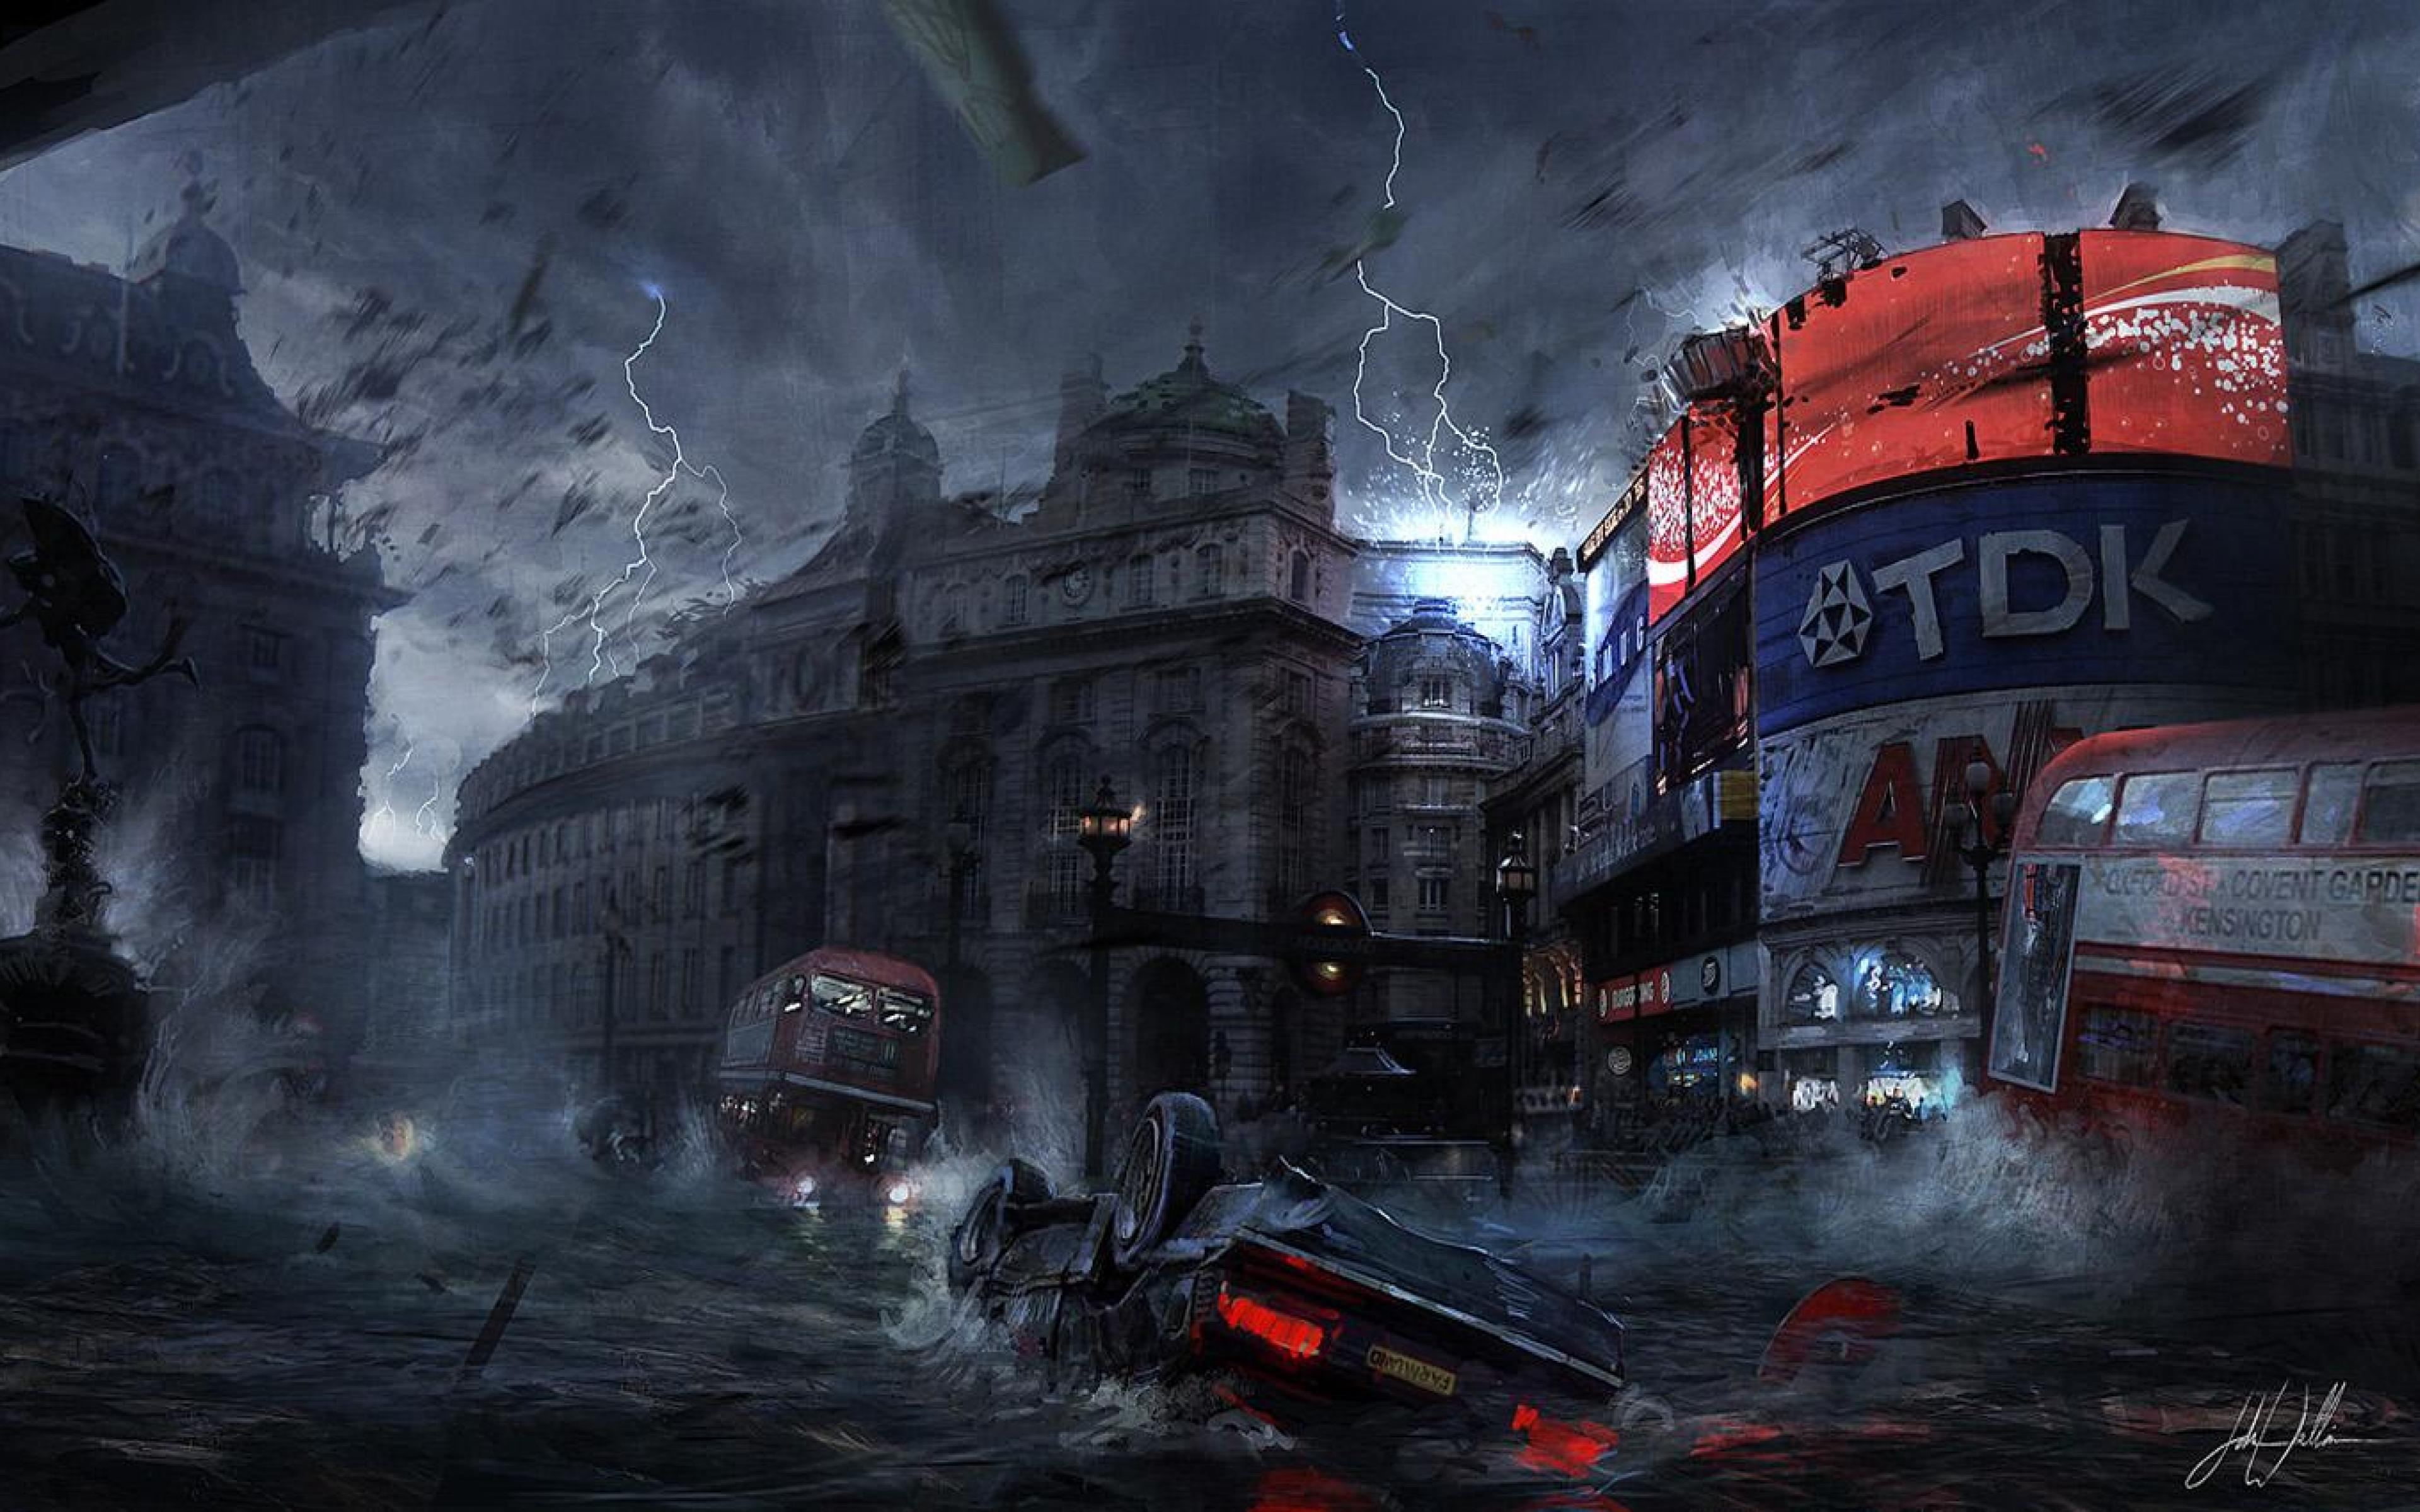 3840x2400-end_of_world_sci_fi_apocalyptic_end_apocalypse-11564